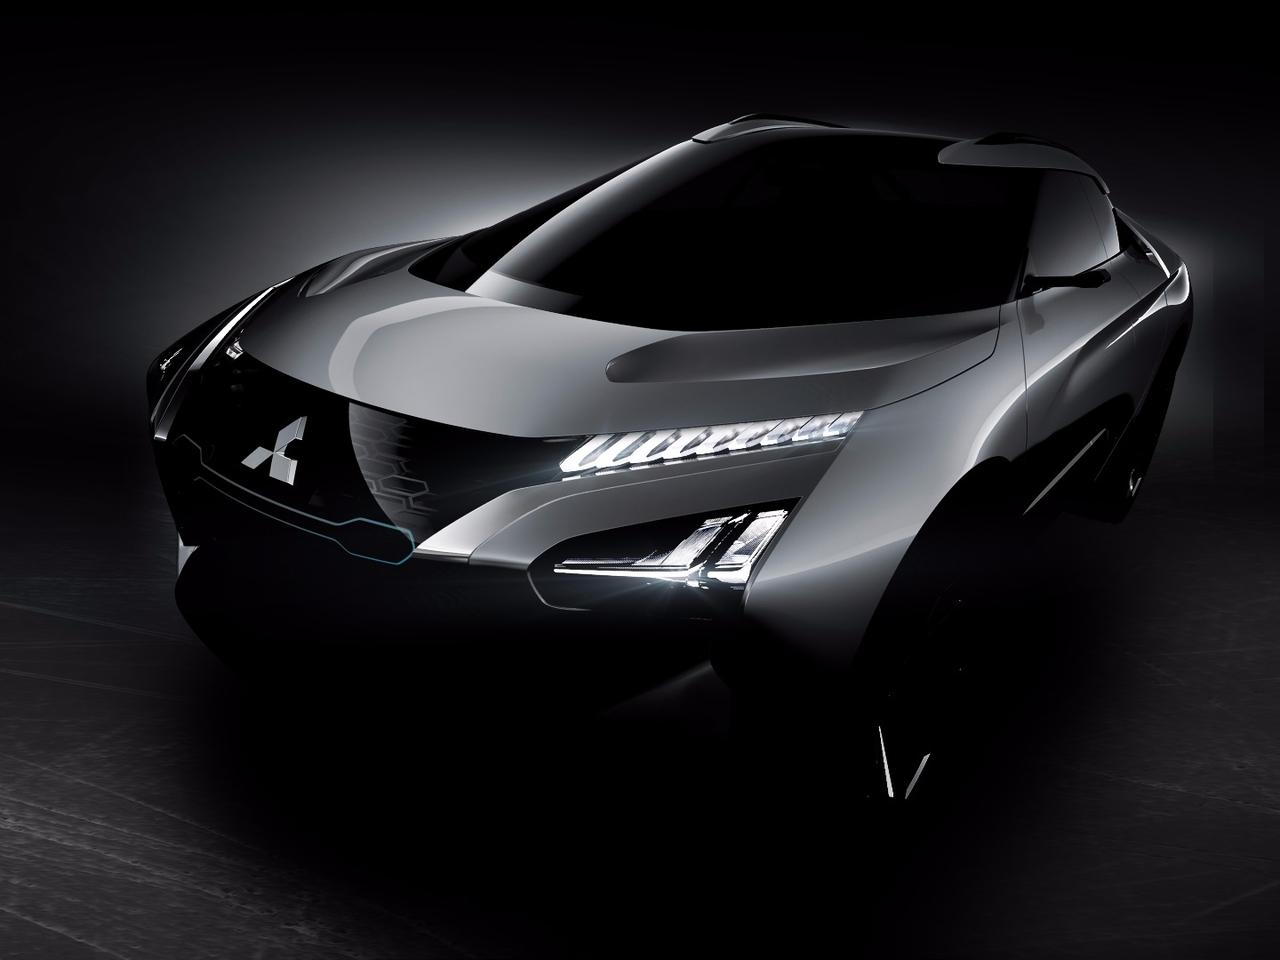 The e-Evolution will be revealed in full at the Tokyo MotorShow